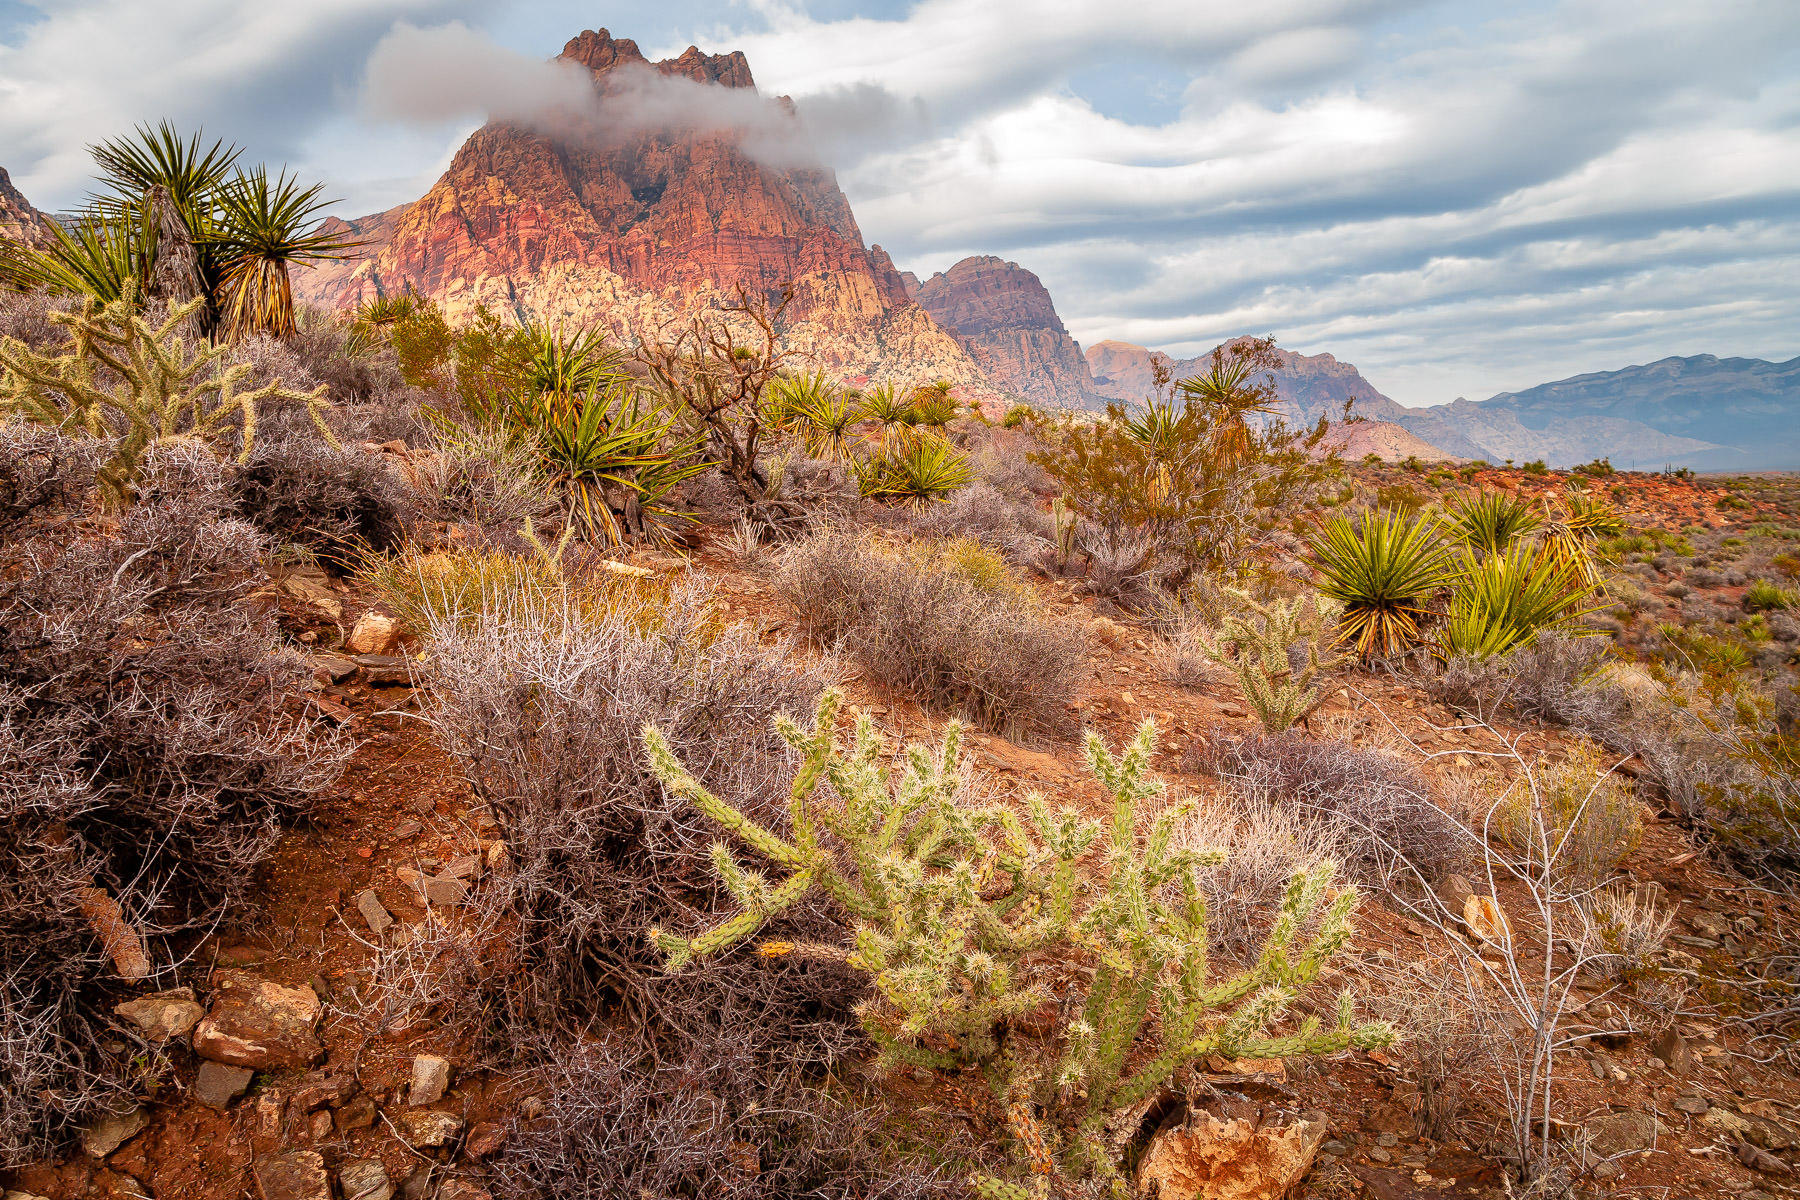 Clouds roll over the arid landscape of the Spring Mountains at Spring Mountain Ranch, Nevada.